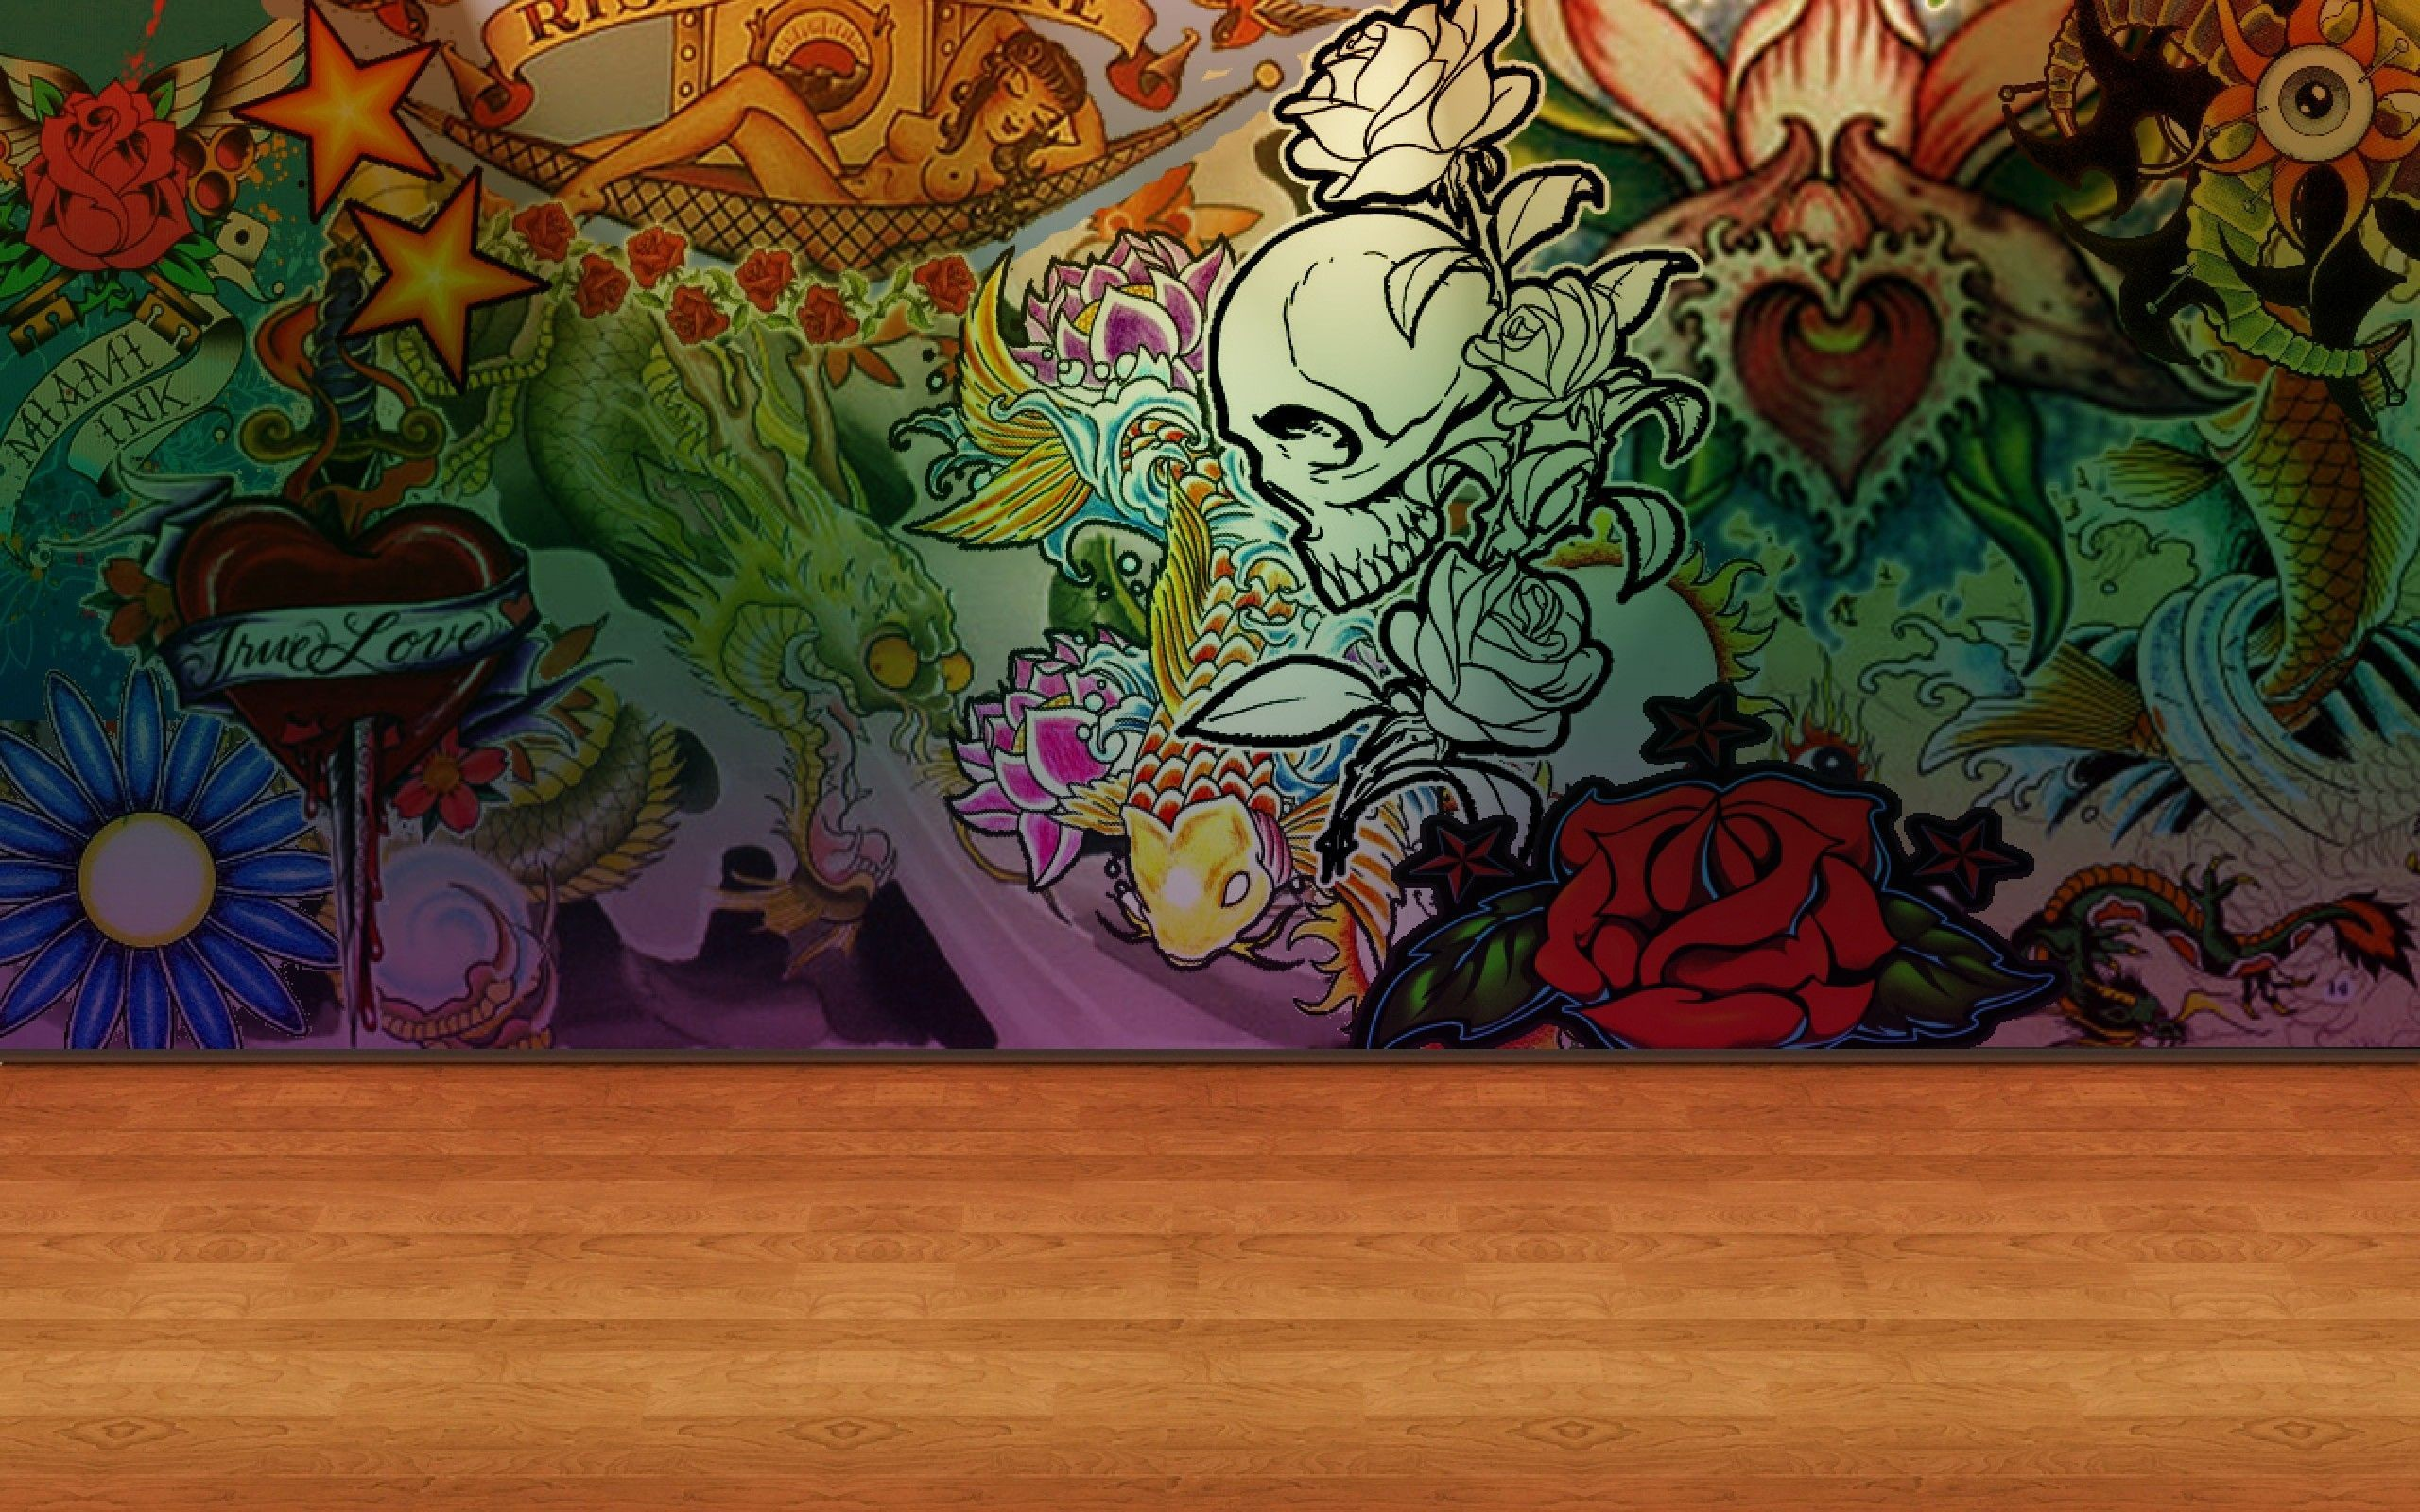 Res: 2560x1600, Backgrounds HD Tattoo Wallpapers - Universal Unique Tubes